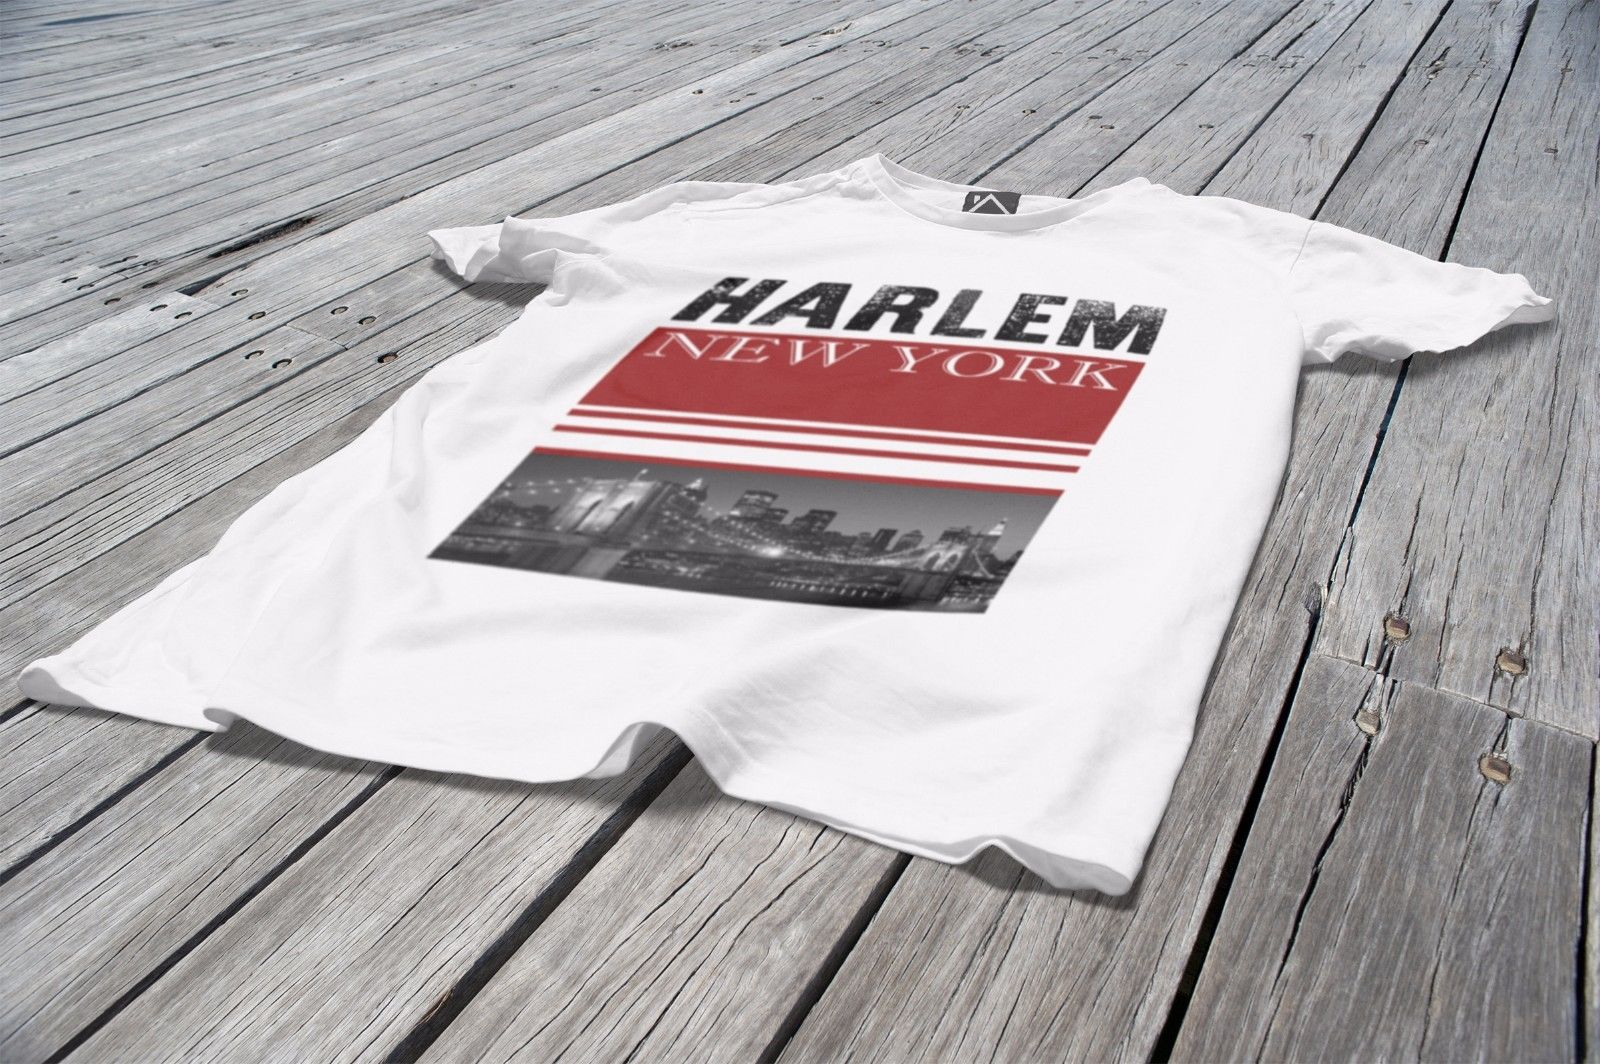 Harlem New York Mens T Shirt America State Fashion Street Swag Dope ... b8b093d9aac